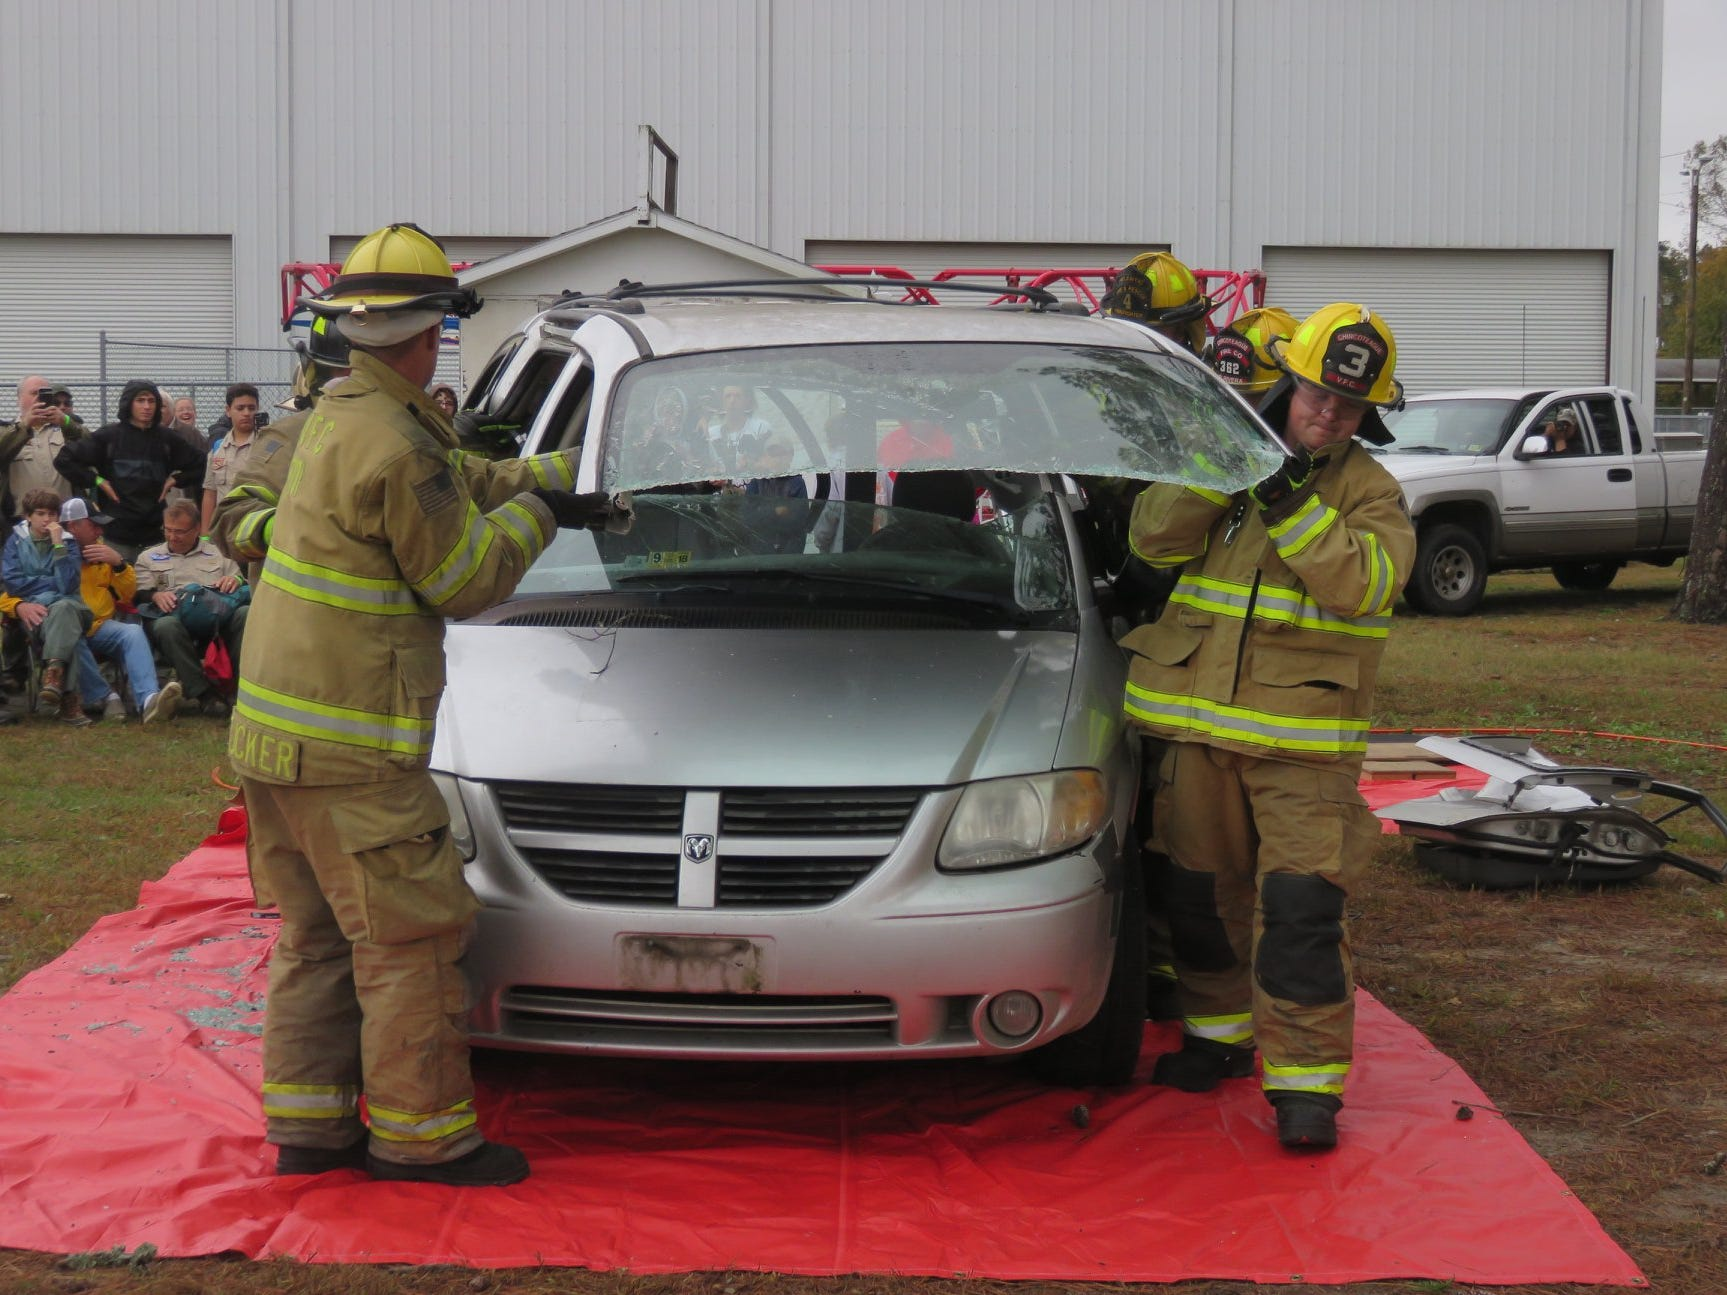 Chincoteague Volunteer Fire Company firefighters show how they respond to a vehicle crash at the Scouts Camporee.